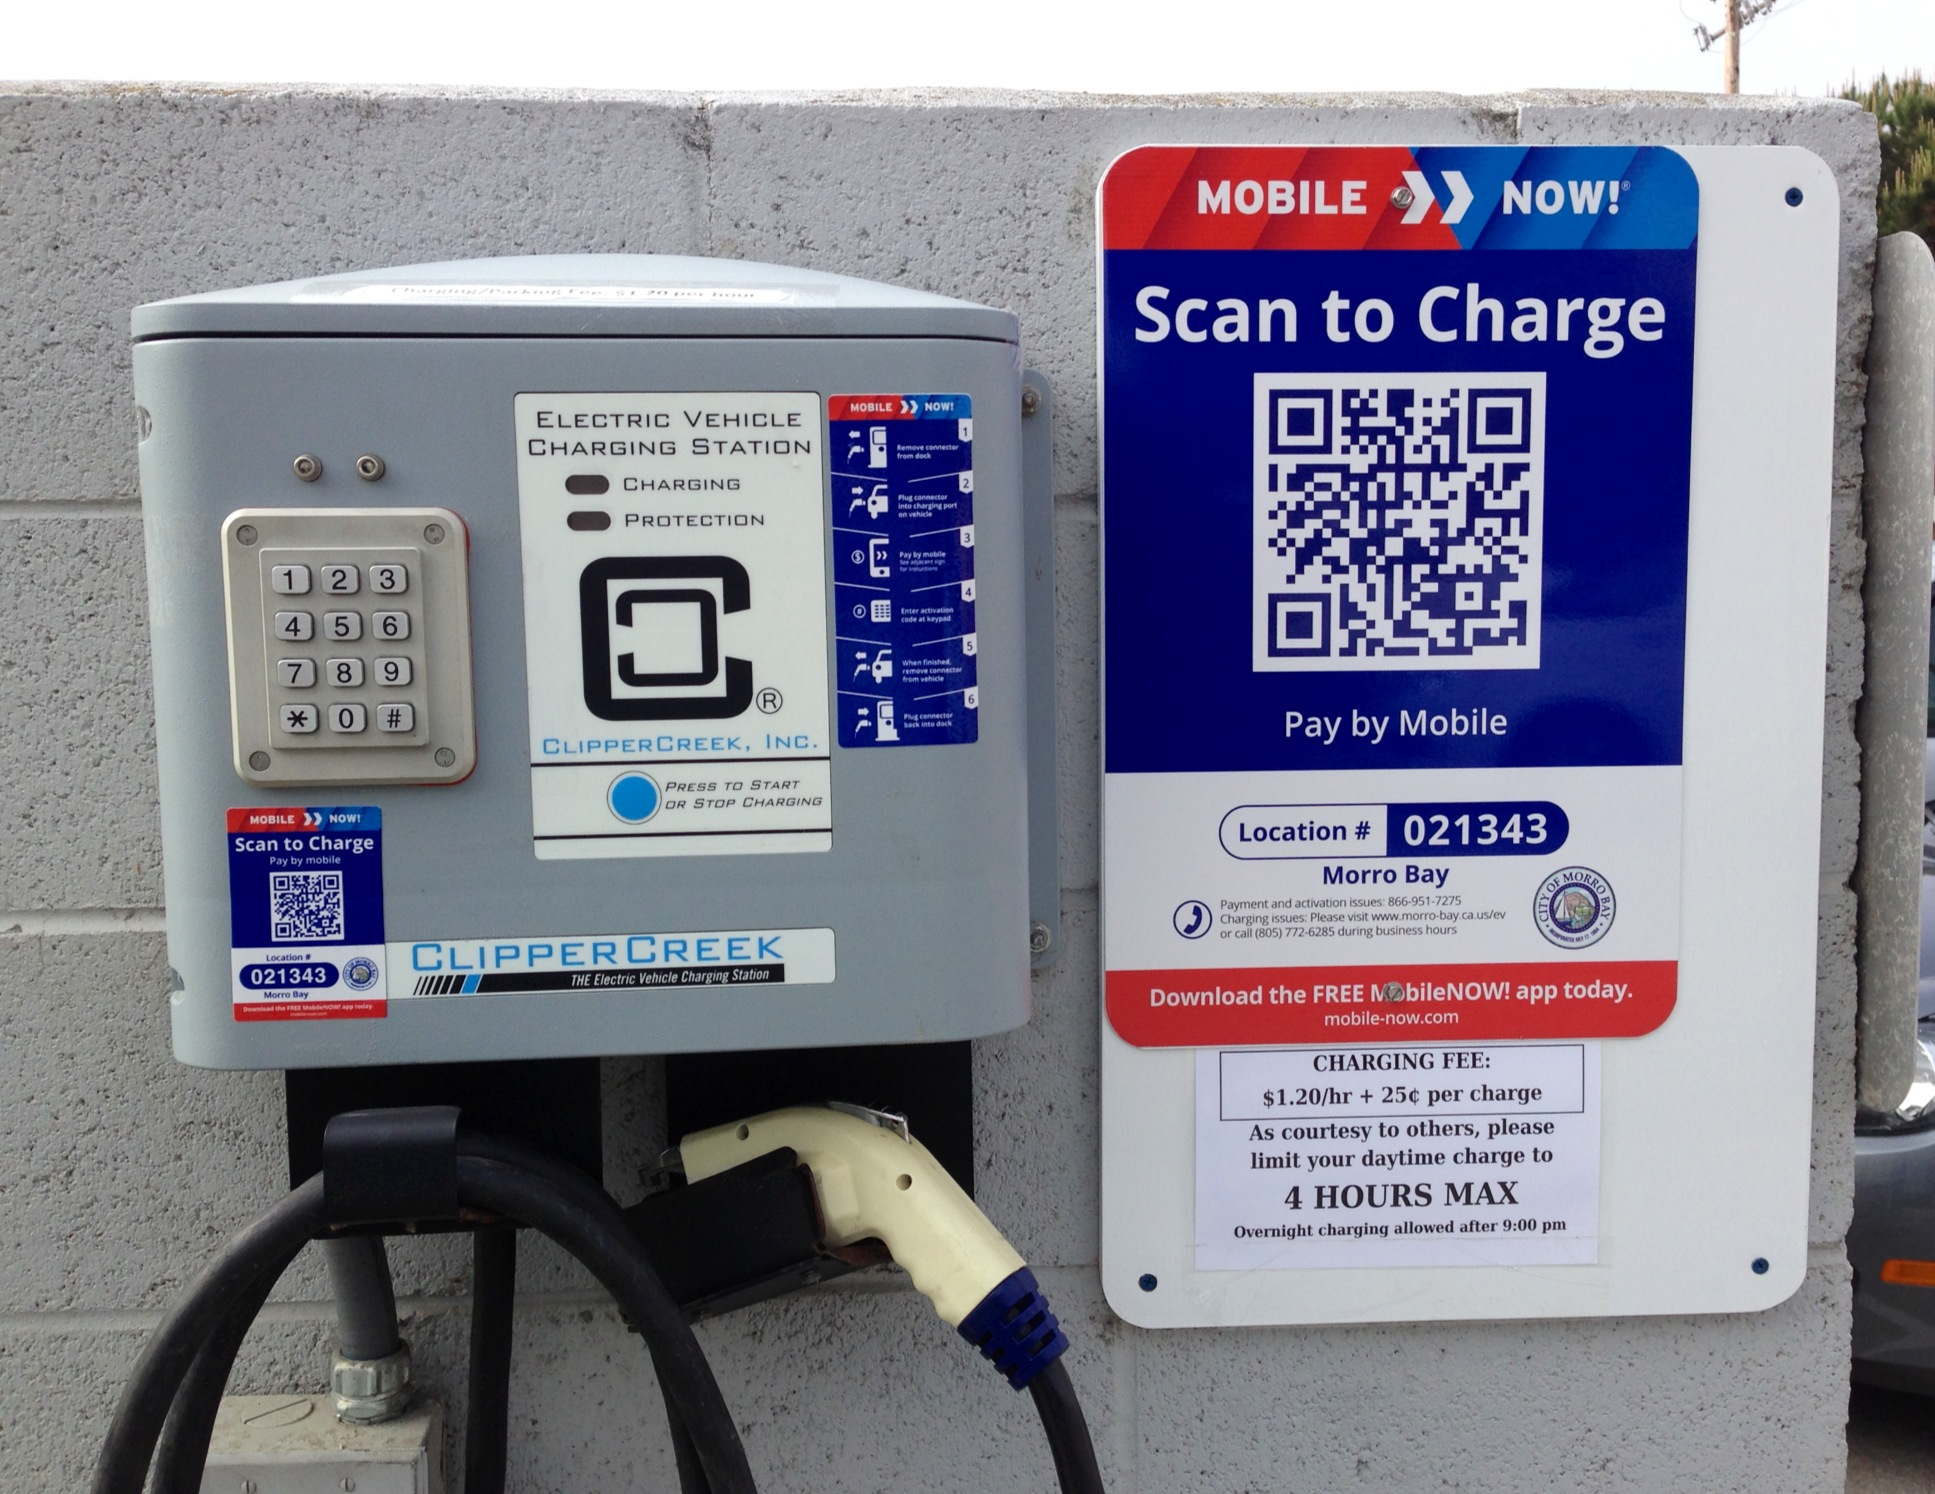 ev charger 595 Harbor.jpg